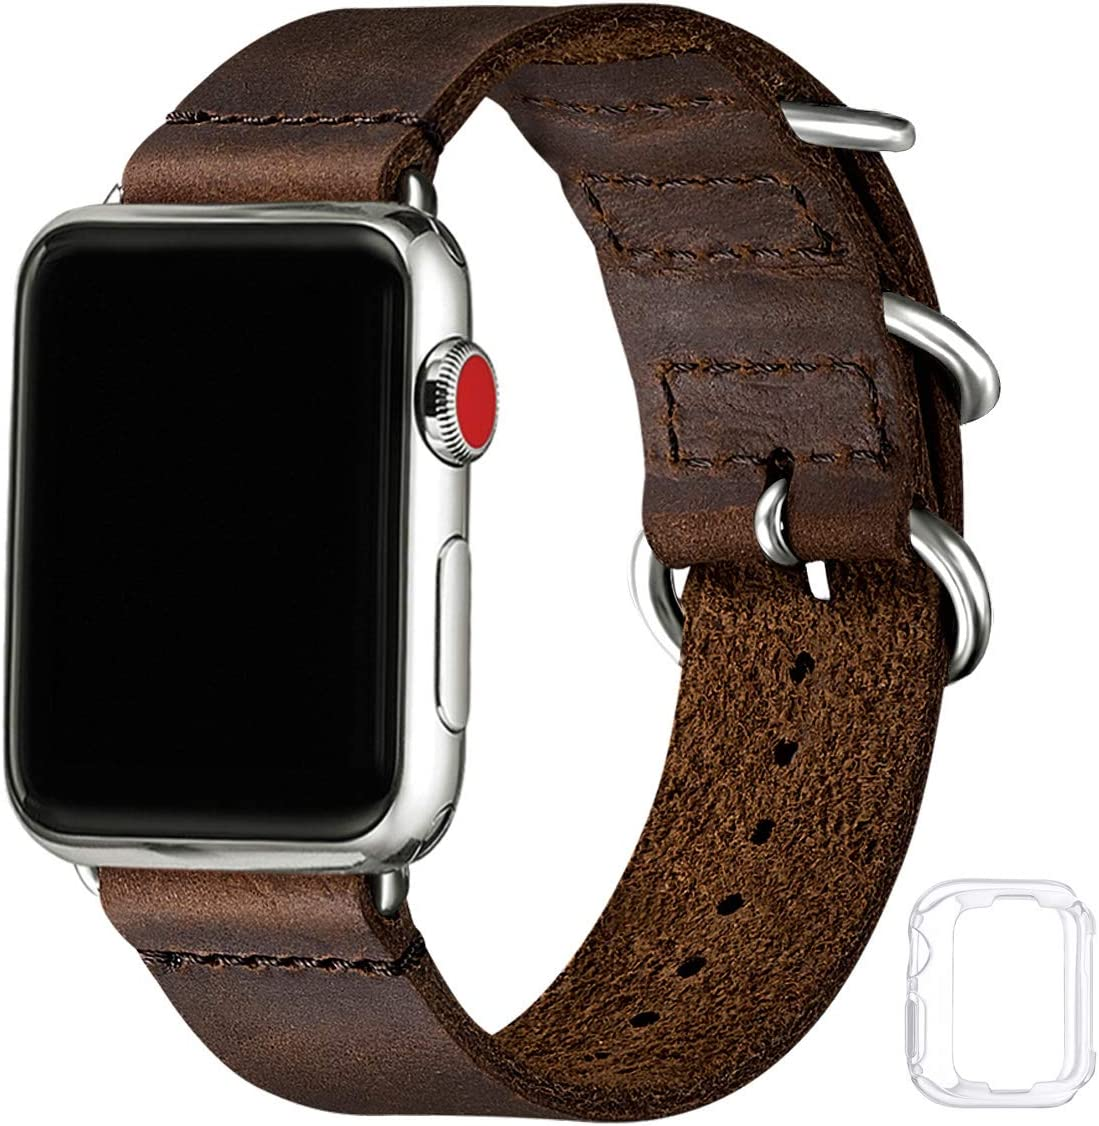 Vintage Leather Bands Compatible with Apple Watch Band 38mm 40mm 42mm 44mm,Genuine Leather Retro Strap Compatible for Men Women iWatch SE Series 6/5/4/3/2/1(Coffee+Silver Connector, 42mm 44mm)